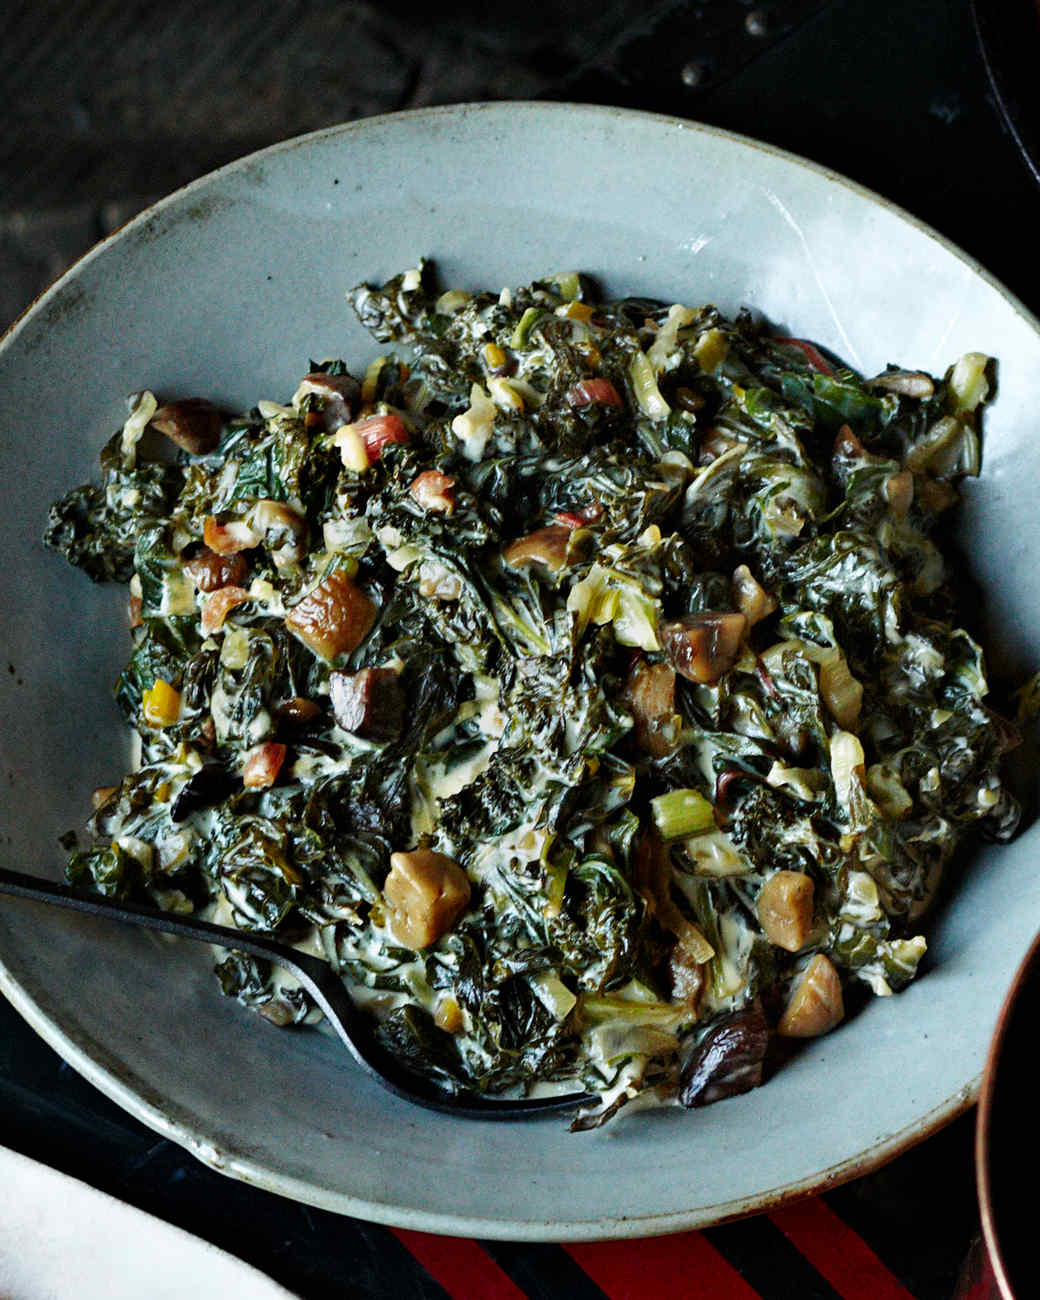 creamed-greens-with-chestnuts-mld108379.jpg